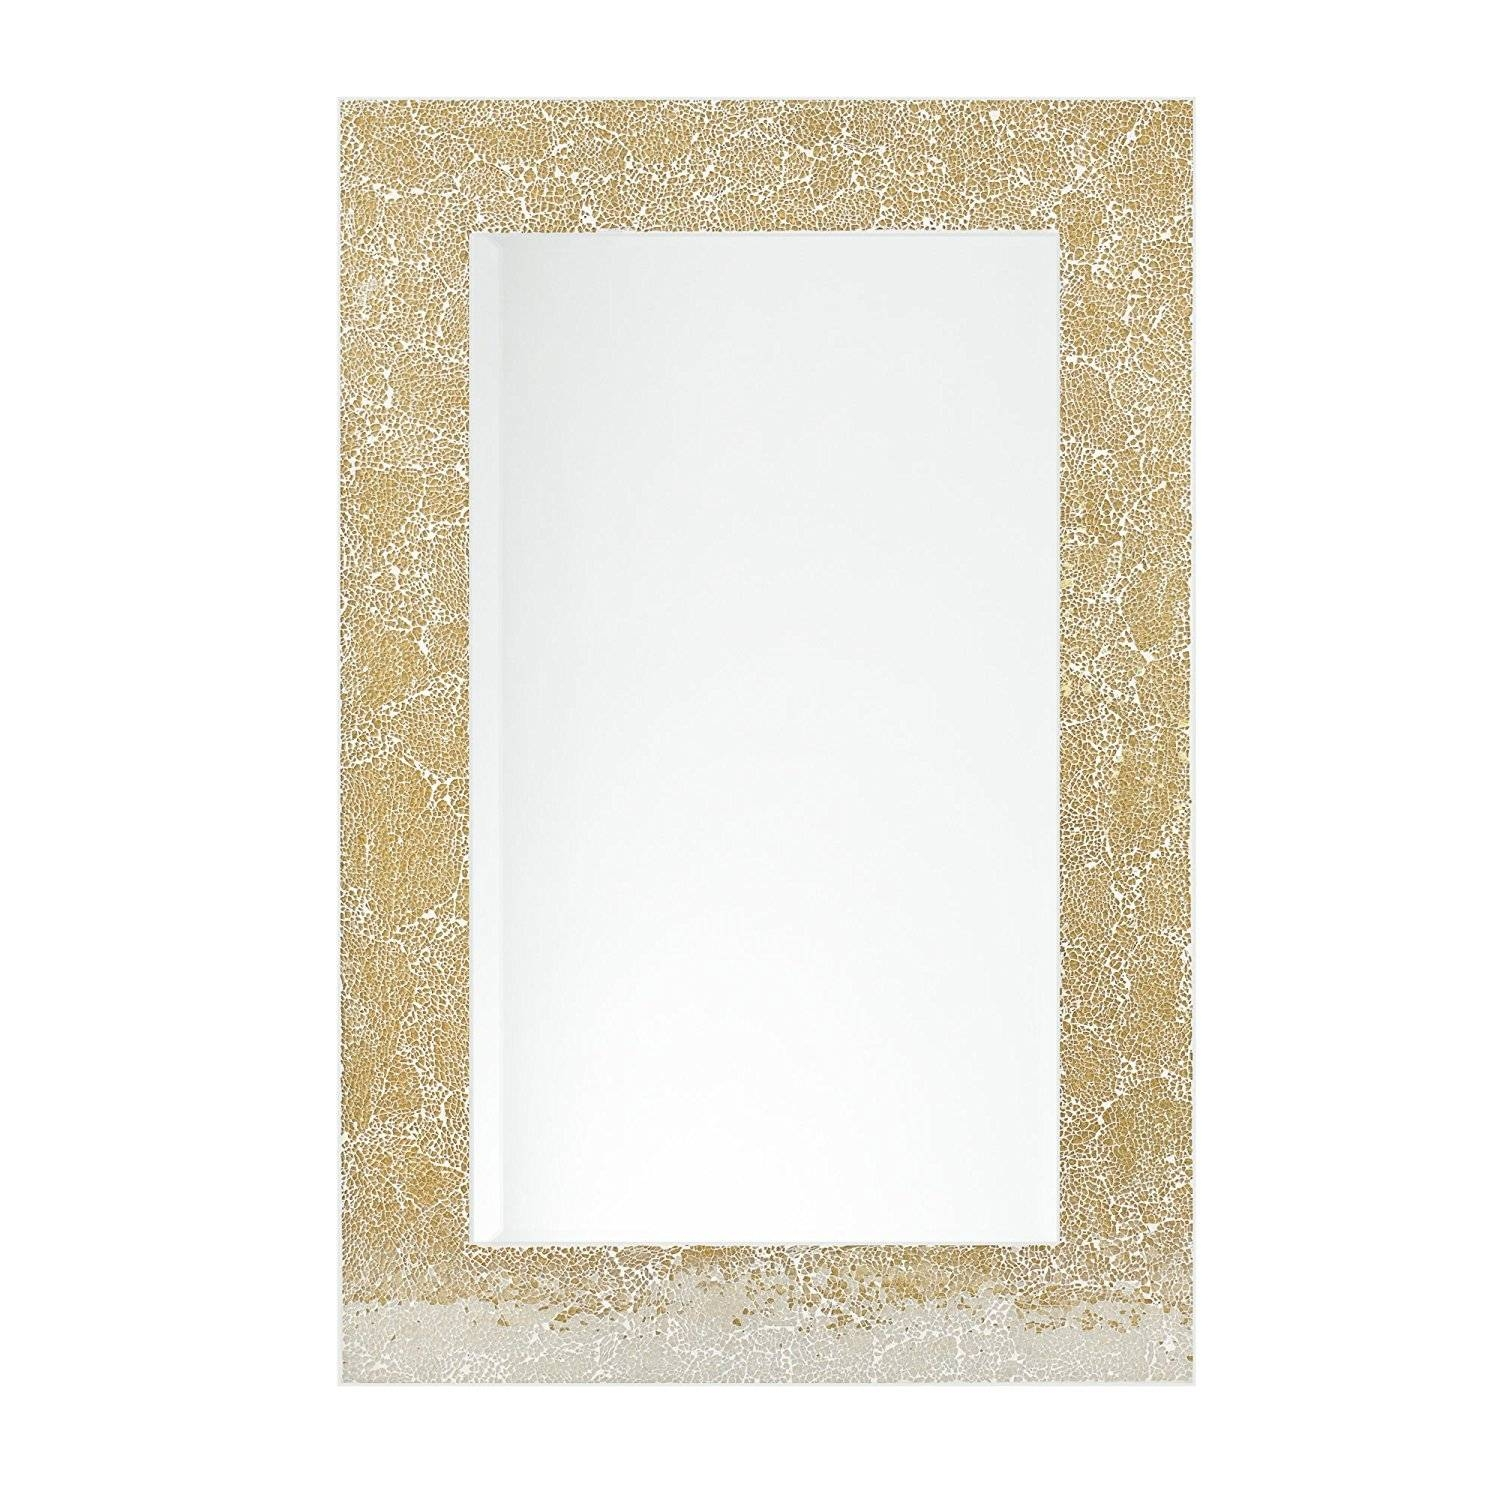 Large Mosaic Mirror In Gold 60Cm X 80Cm – Home Treats Uk With Large Mosaic Mirrors (View 7 of 15)